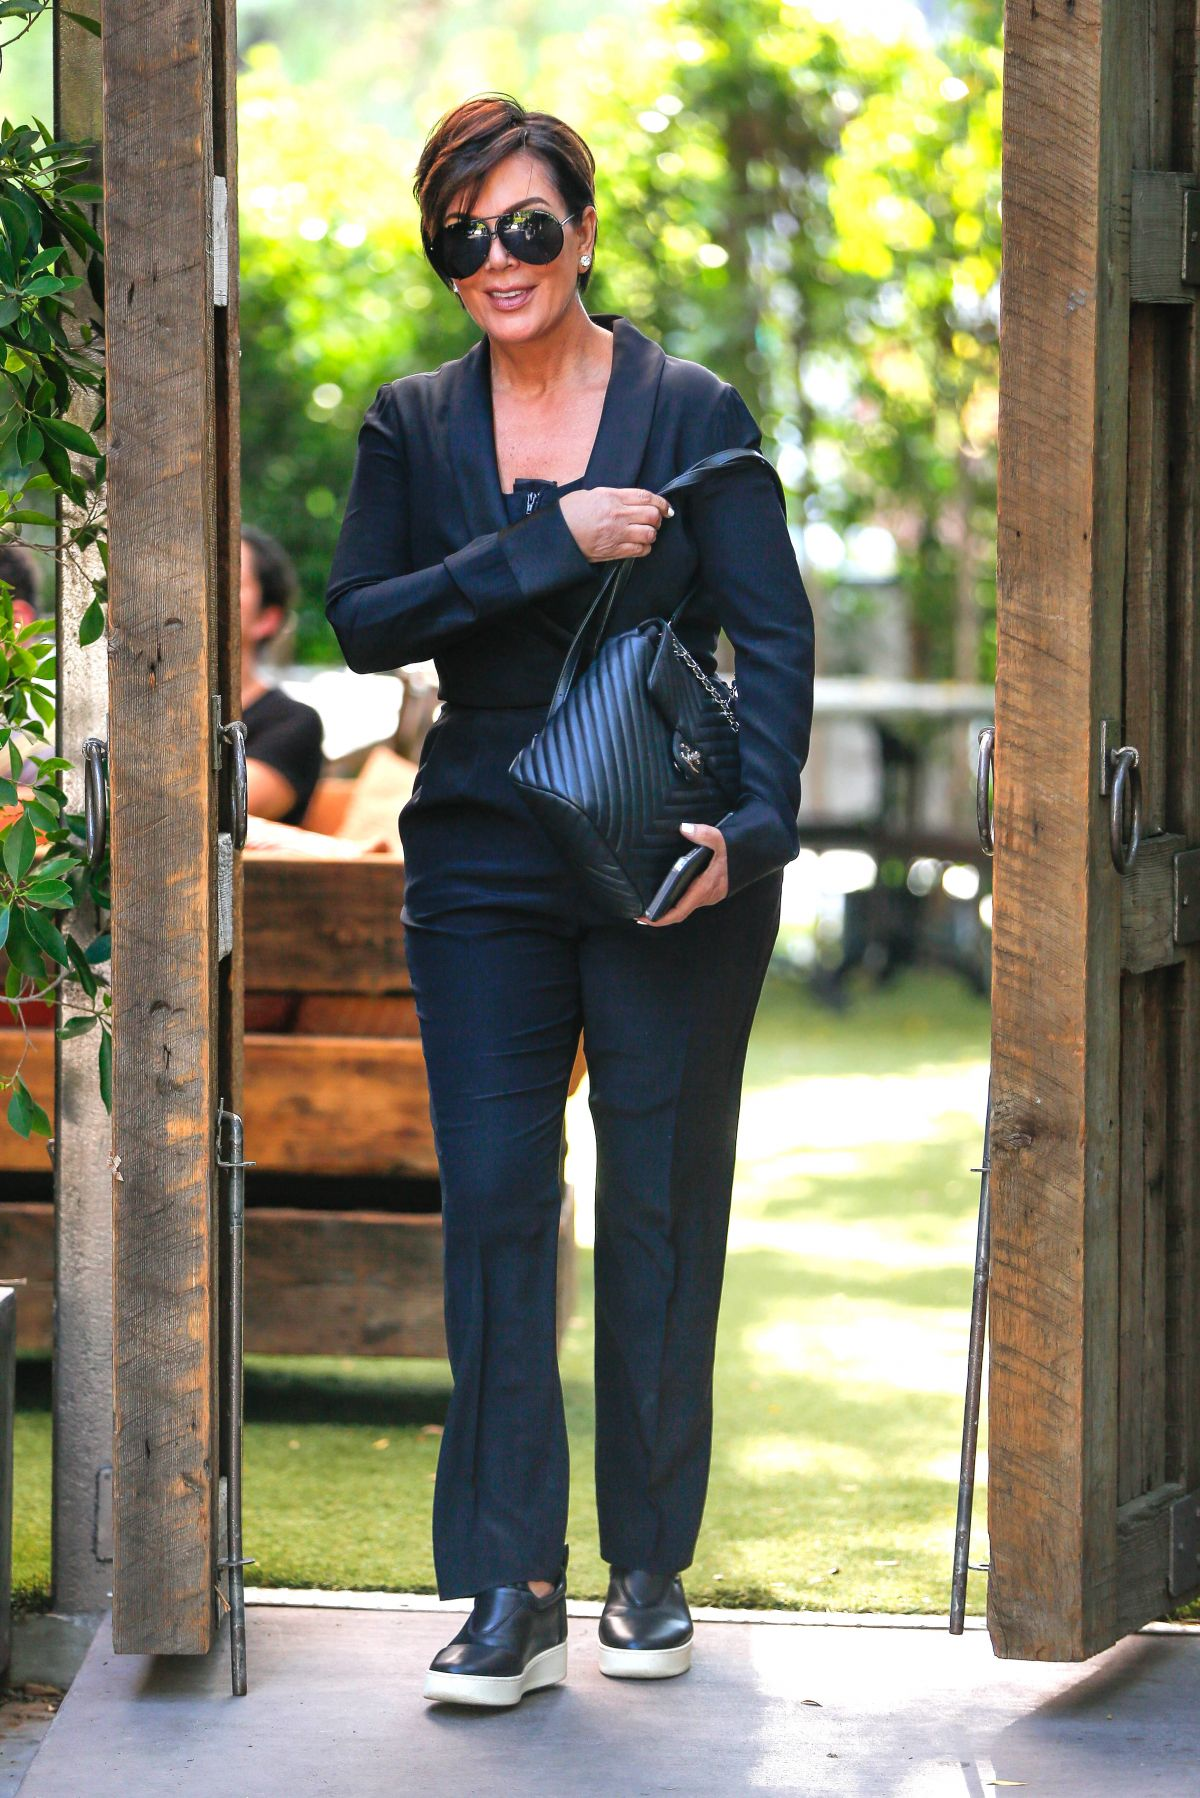 Kris Jenner At Villa Restaurant In Woodland Hills 08 05 2016